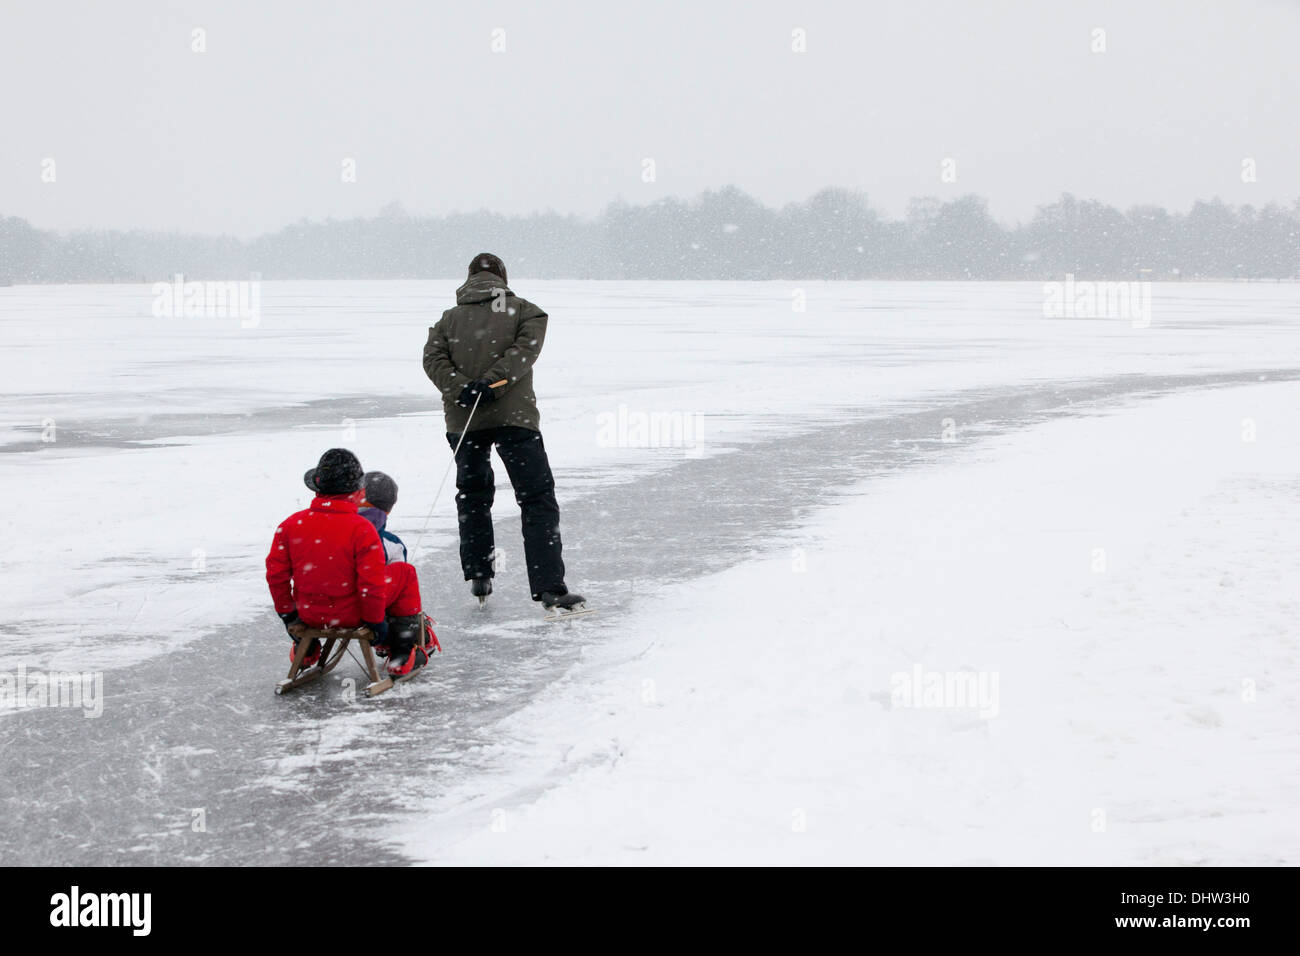 Netherlands, Loosdrecht, Lakes called Loosdrechtse Plassen. Winter. Father ice skating with sons on sledge - Stock Image